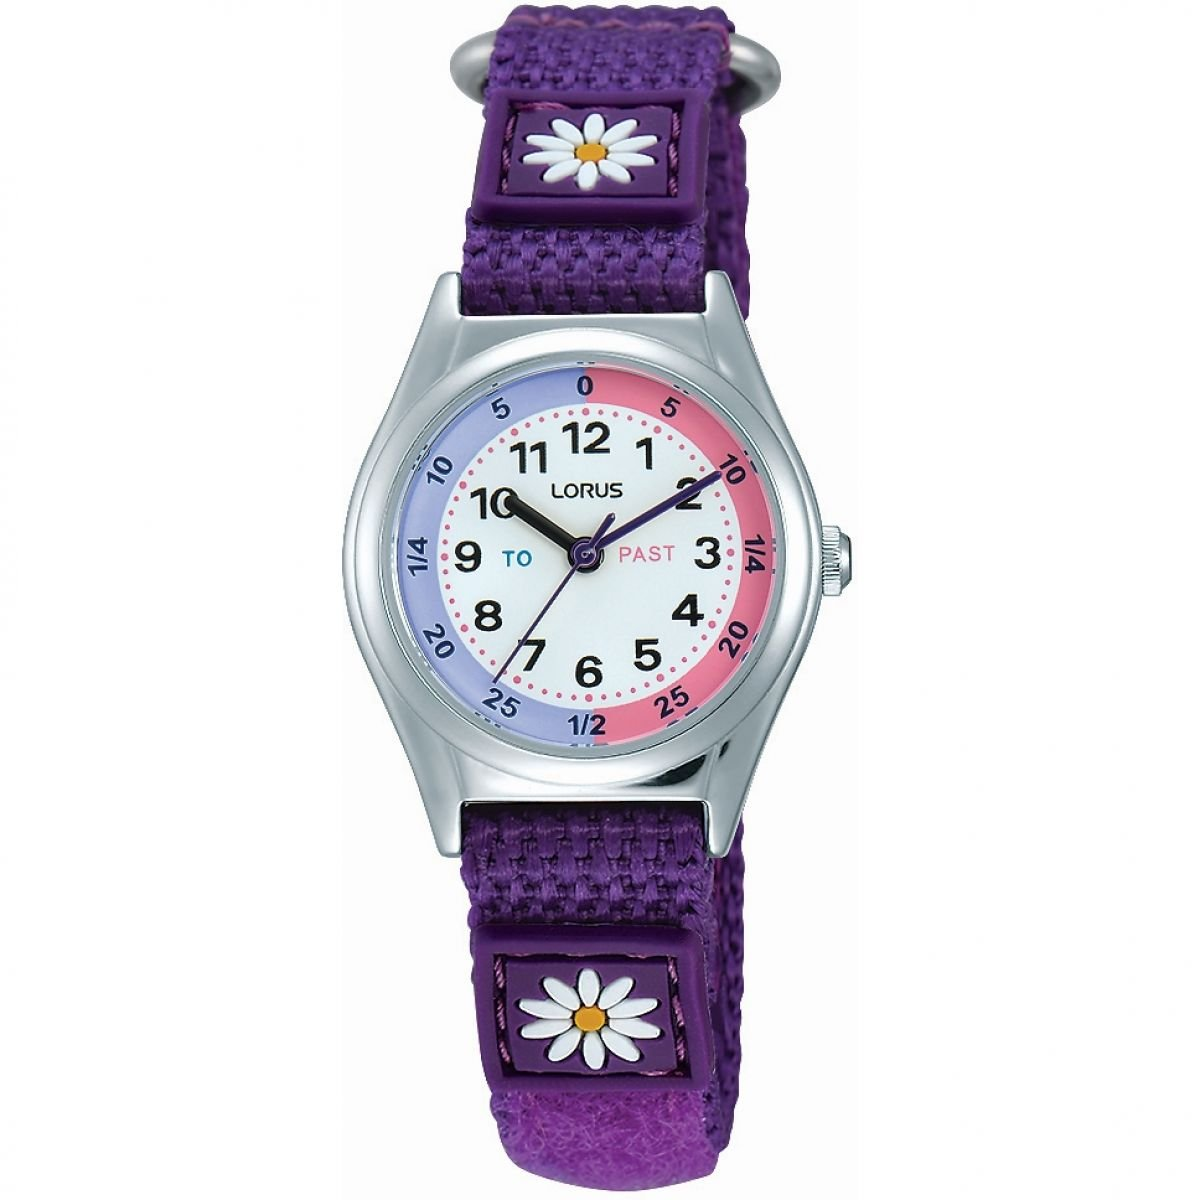 Lorus Girls Analogue Classic Quartz Watch with Nylon Strap RG251KX9